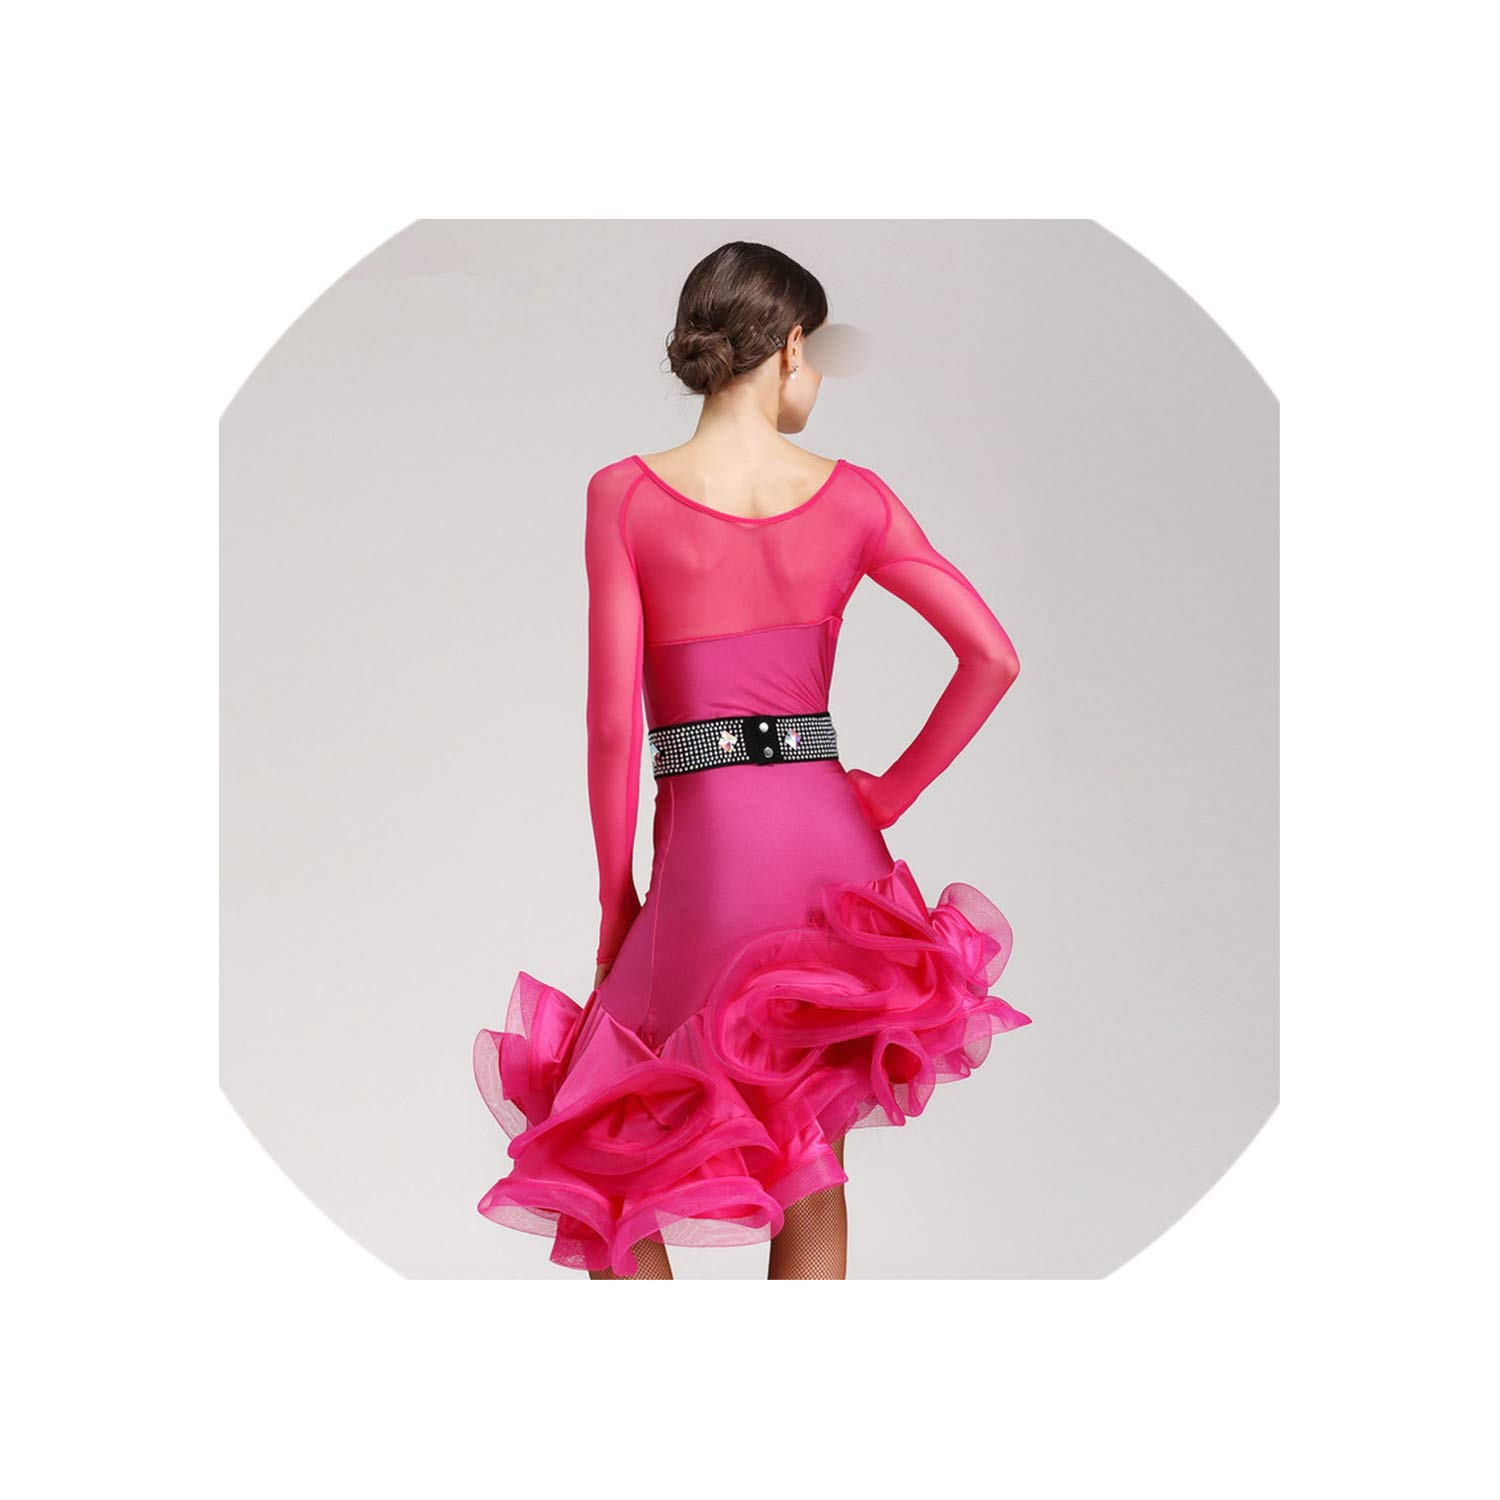 Long Sleeve Latin Dance Competition Dresses Women Samba Rumba Tango Latin Dance Dress Latin Dance,Rose Red,XL by Colourful Day Dance Dress